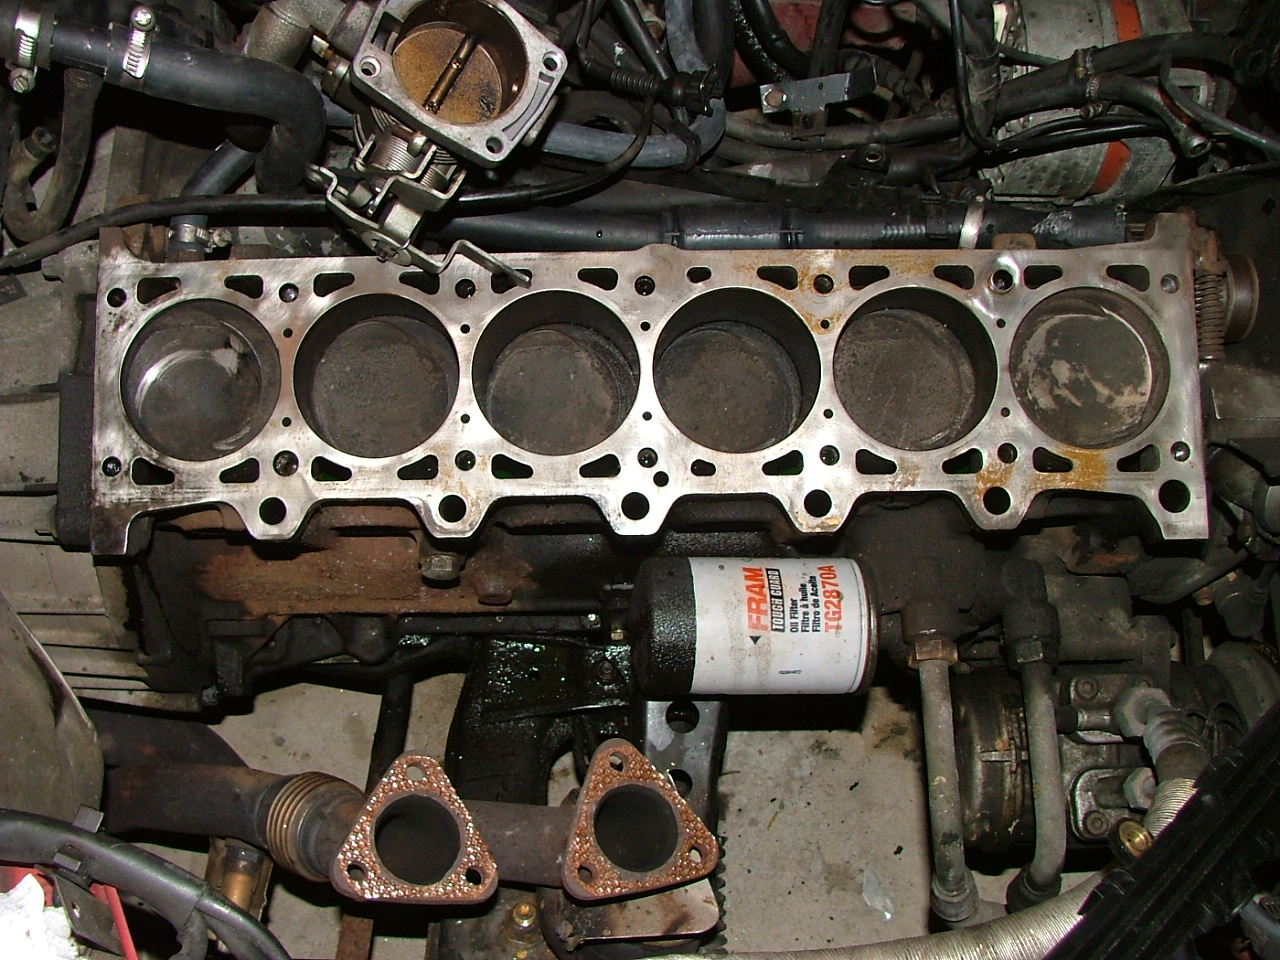 Straight Six Engine Wikipedia 1989 300zx Fuel Filter Removal A Bmw M20b25 With The Cylinder Head Removed Showing Pistons In Cylinders Of